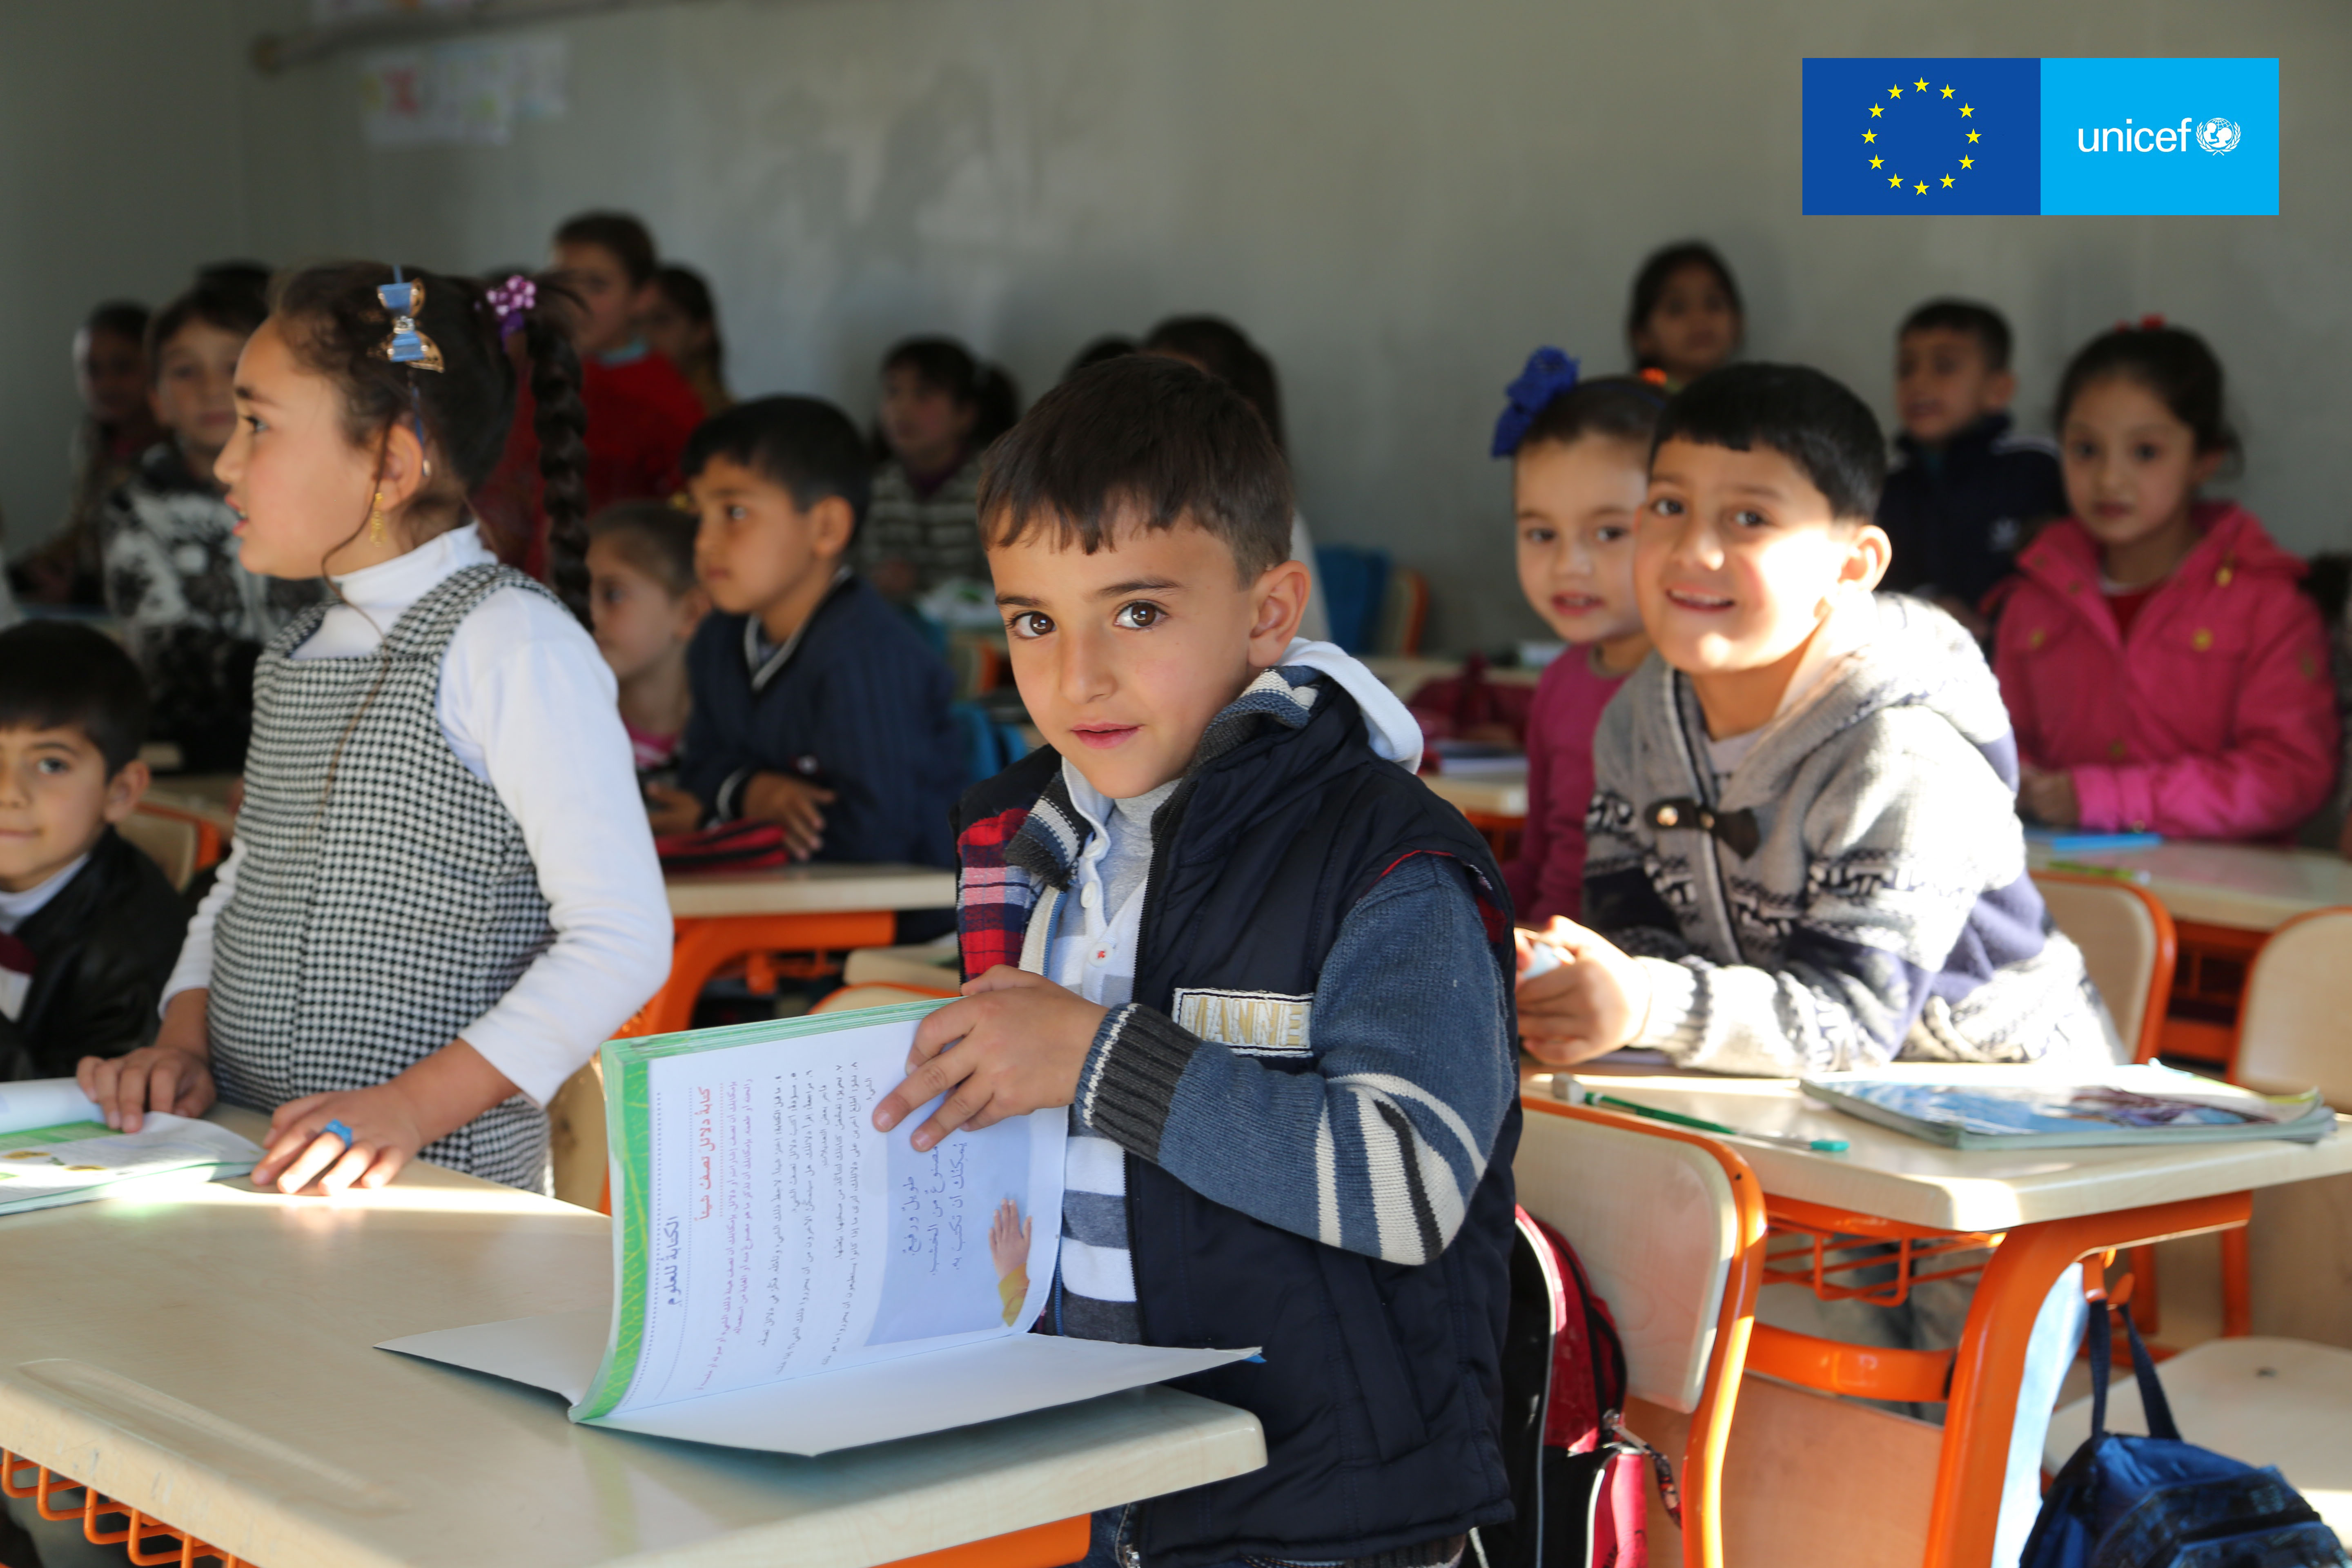 A student opens his textbook at the start of a lesson at the Temporary Education Center in Osmaniye, southern Turkey, March 2016. Credit: UNICEF Turkey/2016/Ergen